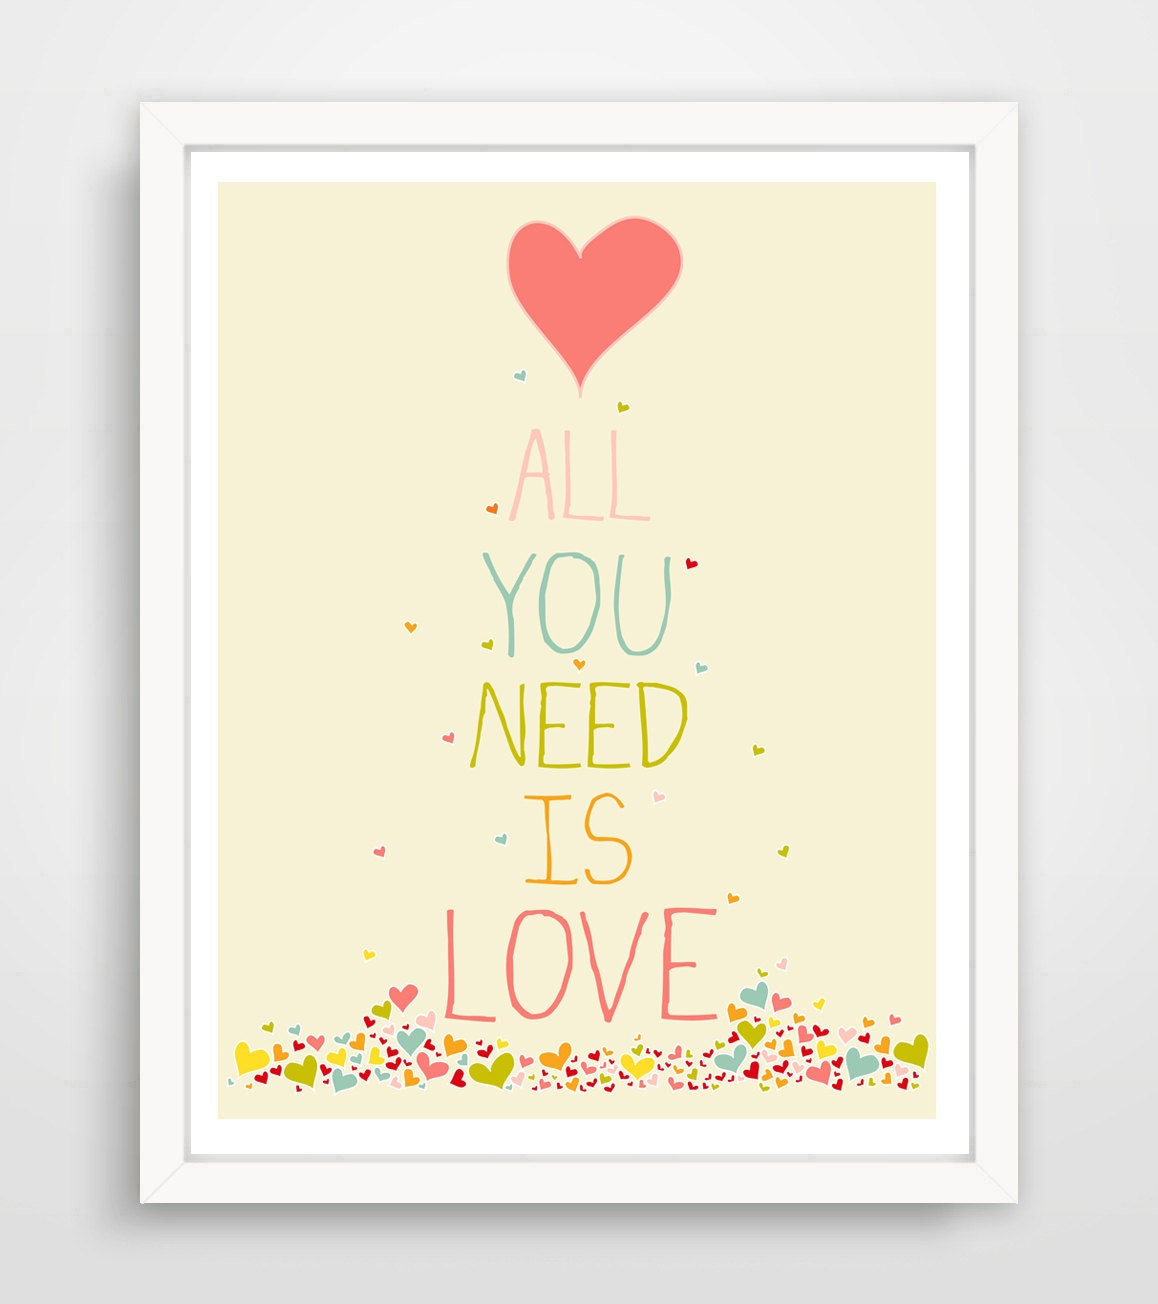 Wall Art Love Heart : All you need is love print heart wall art decor